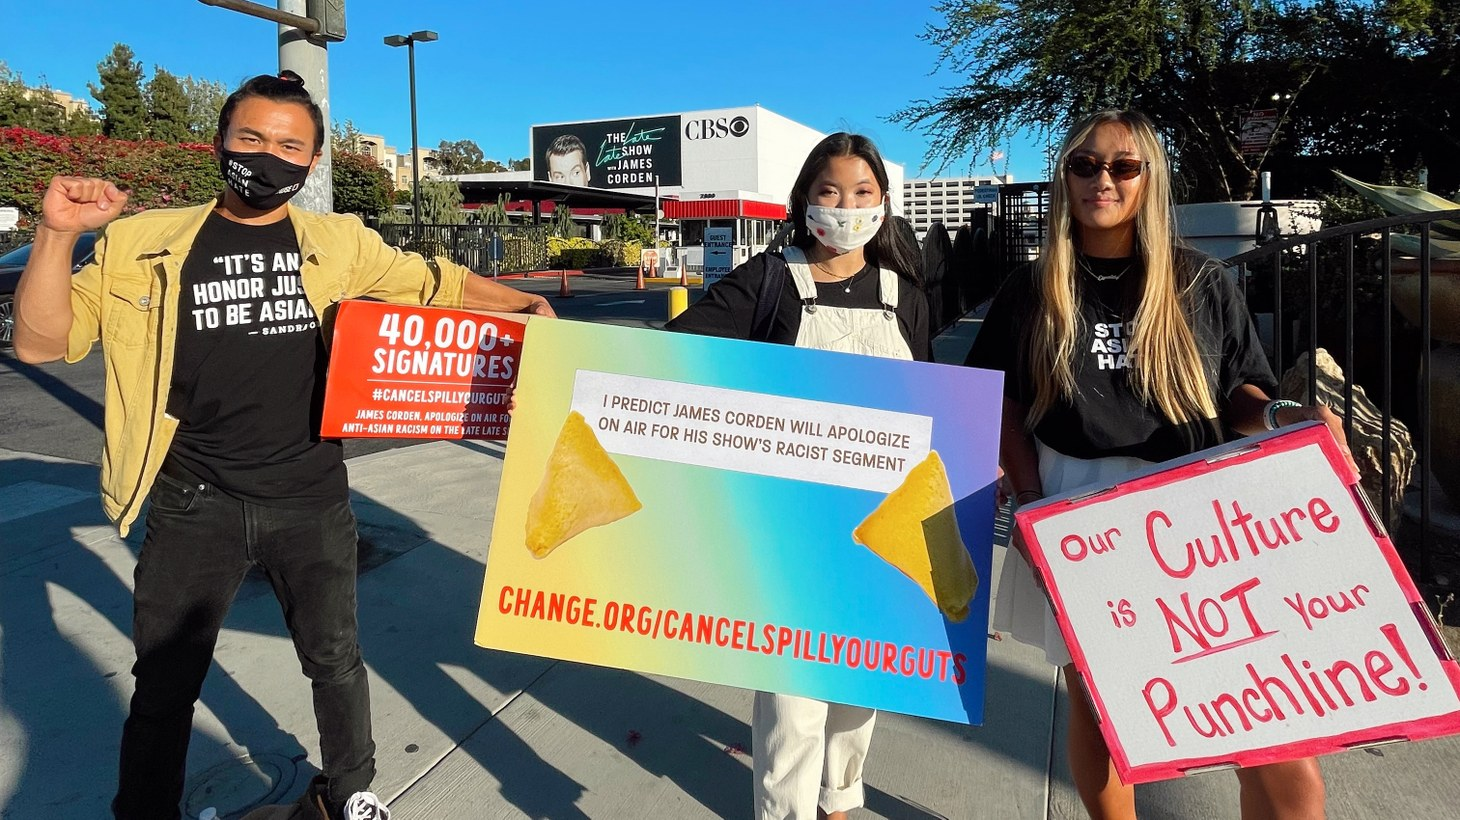 Kim Saira (M) leads a protest in front of CBS Television City, demanding the host of The Late Late Show, James Corden, apologize for negatively portraying Asian food.